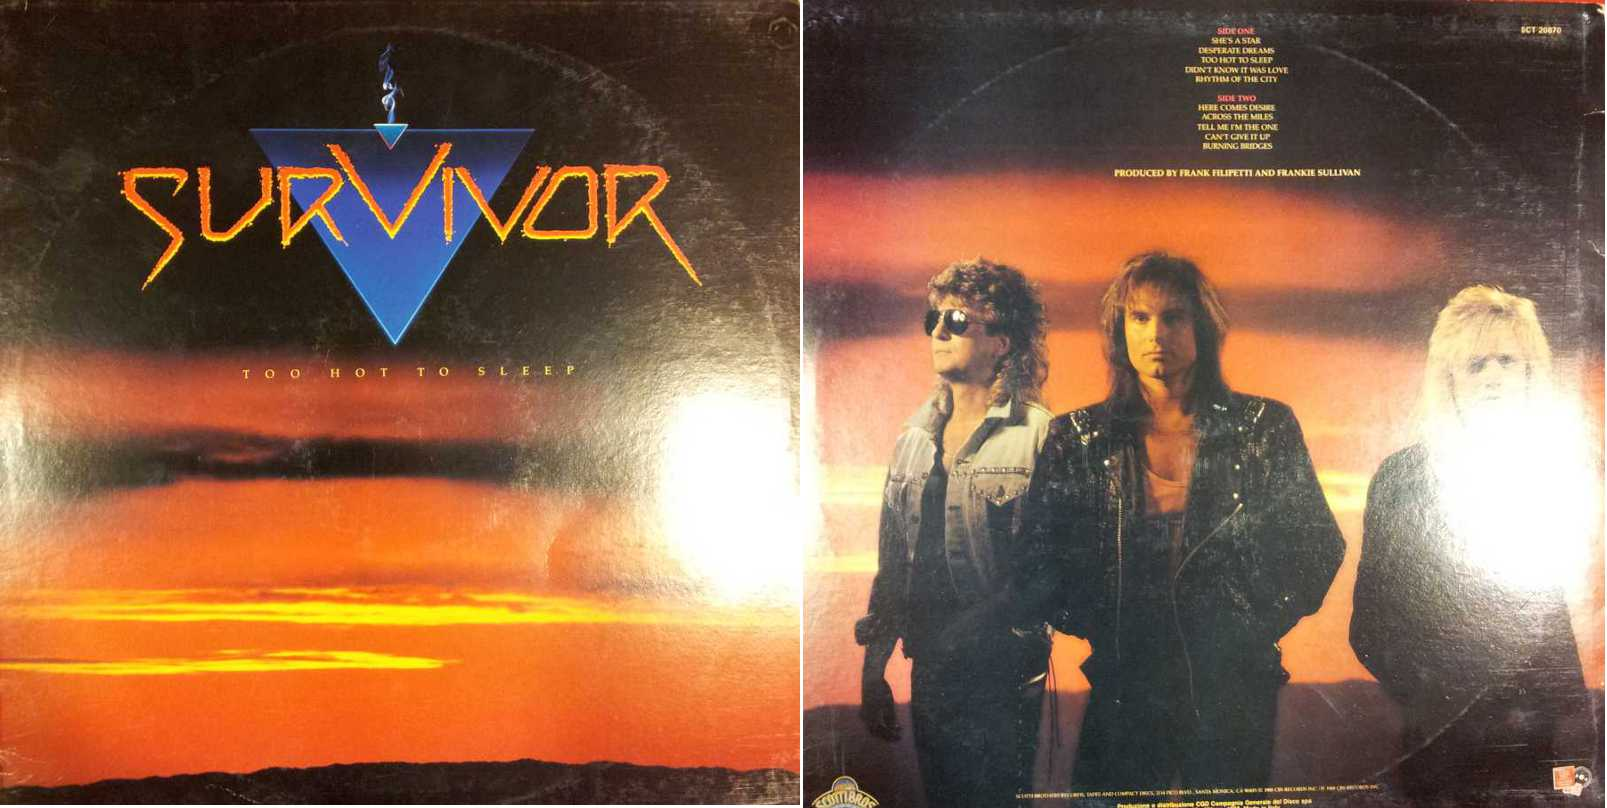 SURVIVOR - Too Hot To Sleep (LP/Vinile 33 giri) USATO BUONO